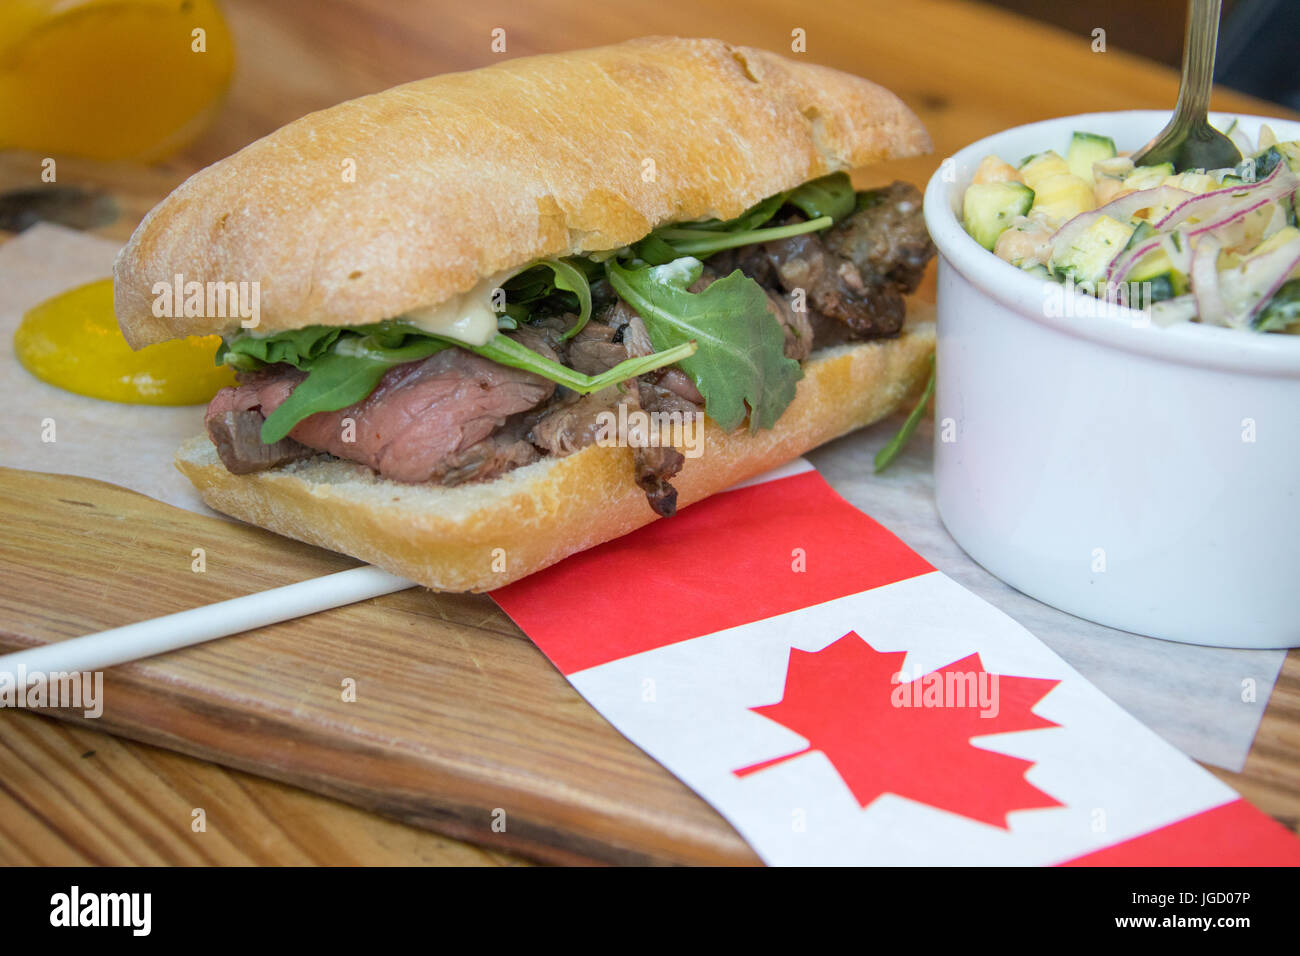 July, 1, 2017, Canada 150 Day Special Prime Rib sandwich at Meat and Bread Restaurant, Vancouver, Canada - Stock Image